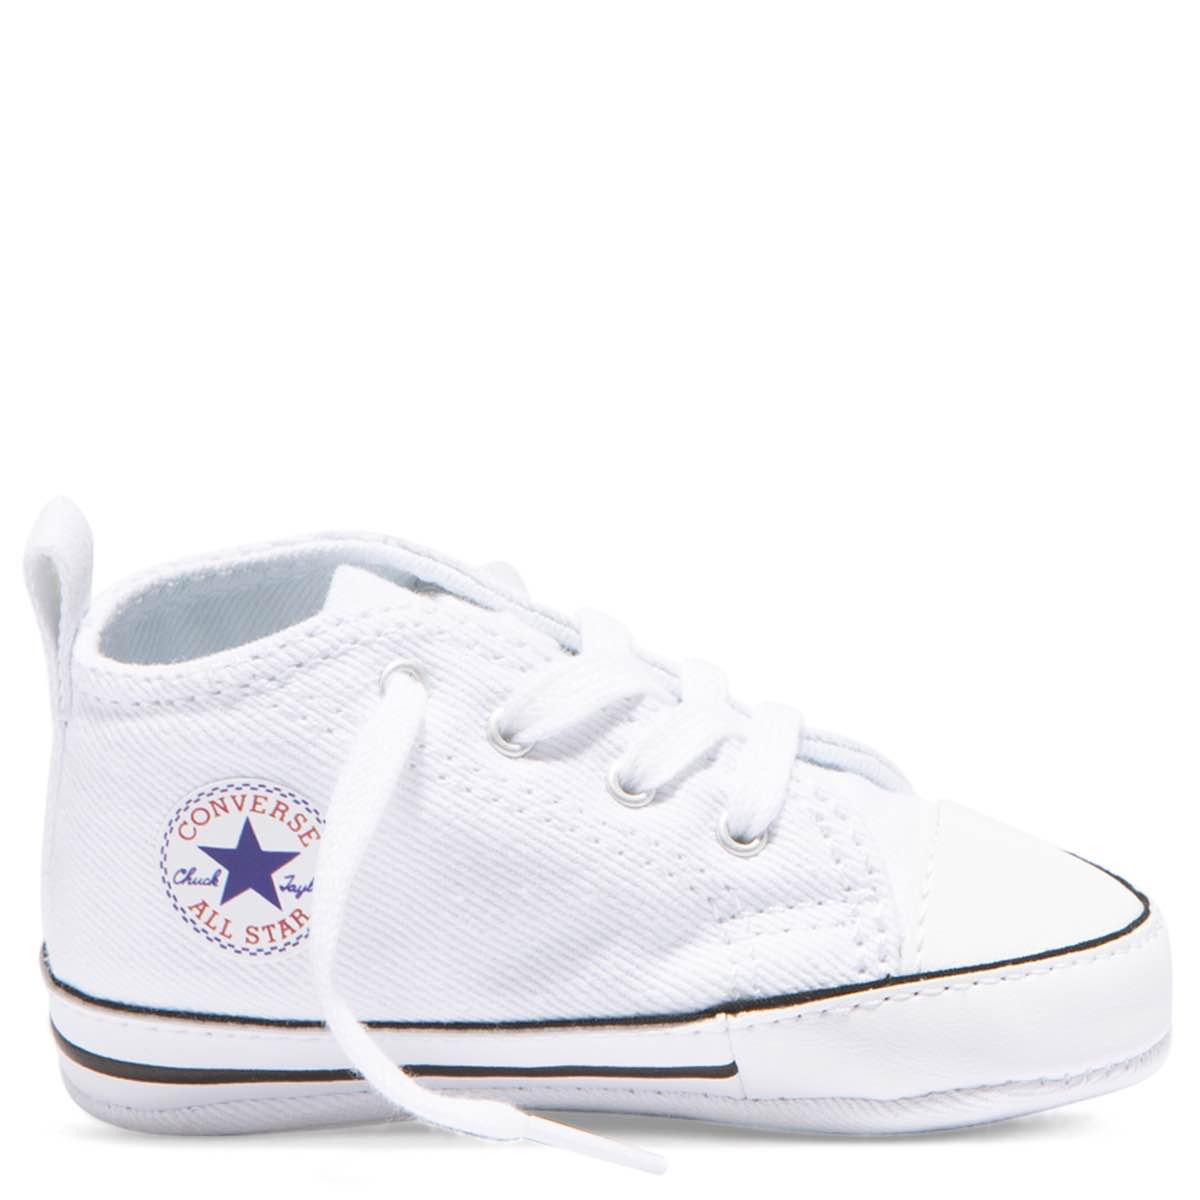 Infants Converse Chuck Taylor All Star Baby 1St Star Crib